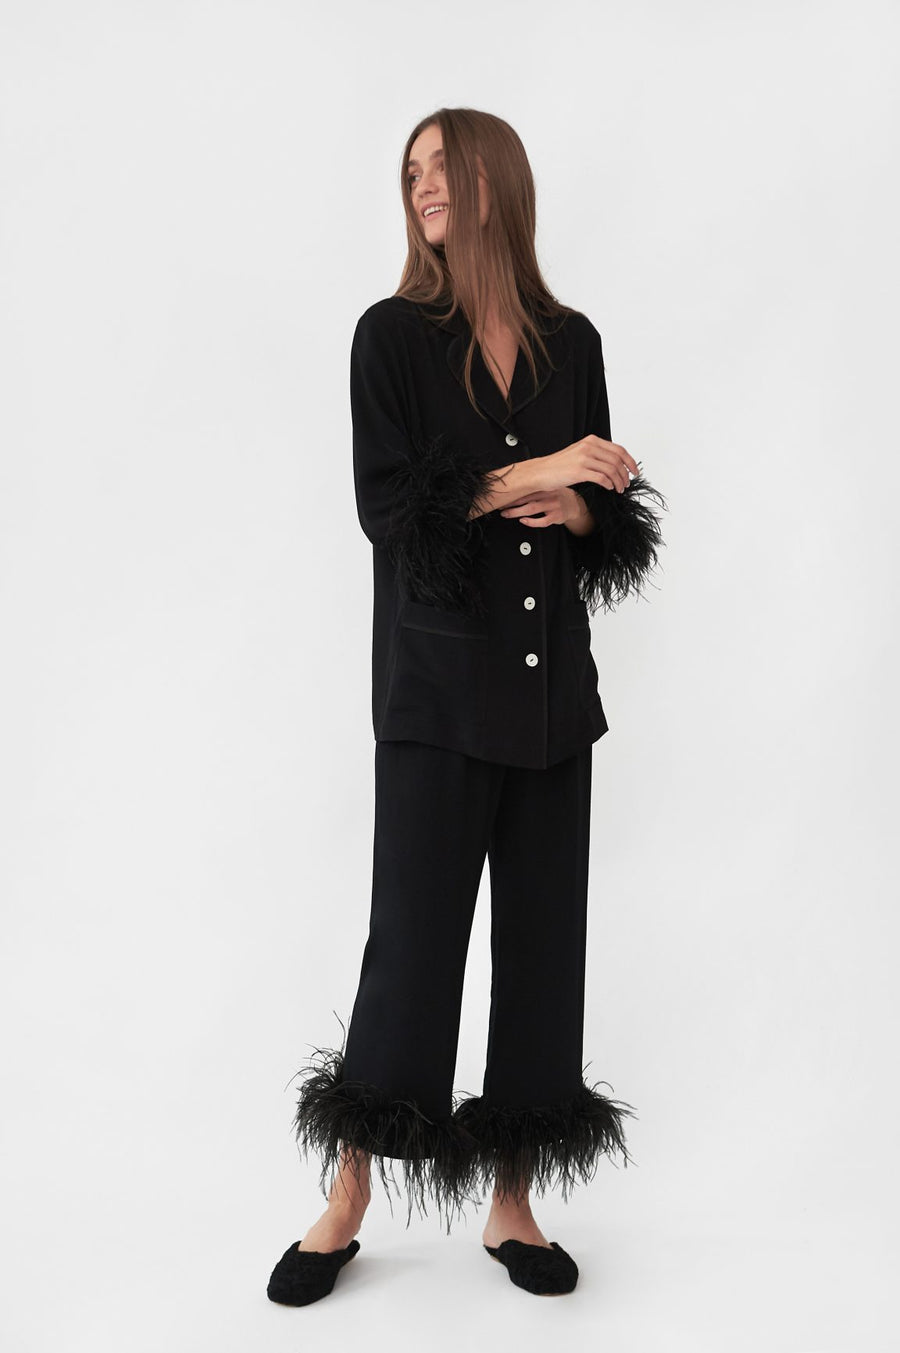 Party Pajama Set with Feathers - Black